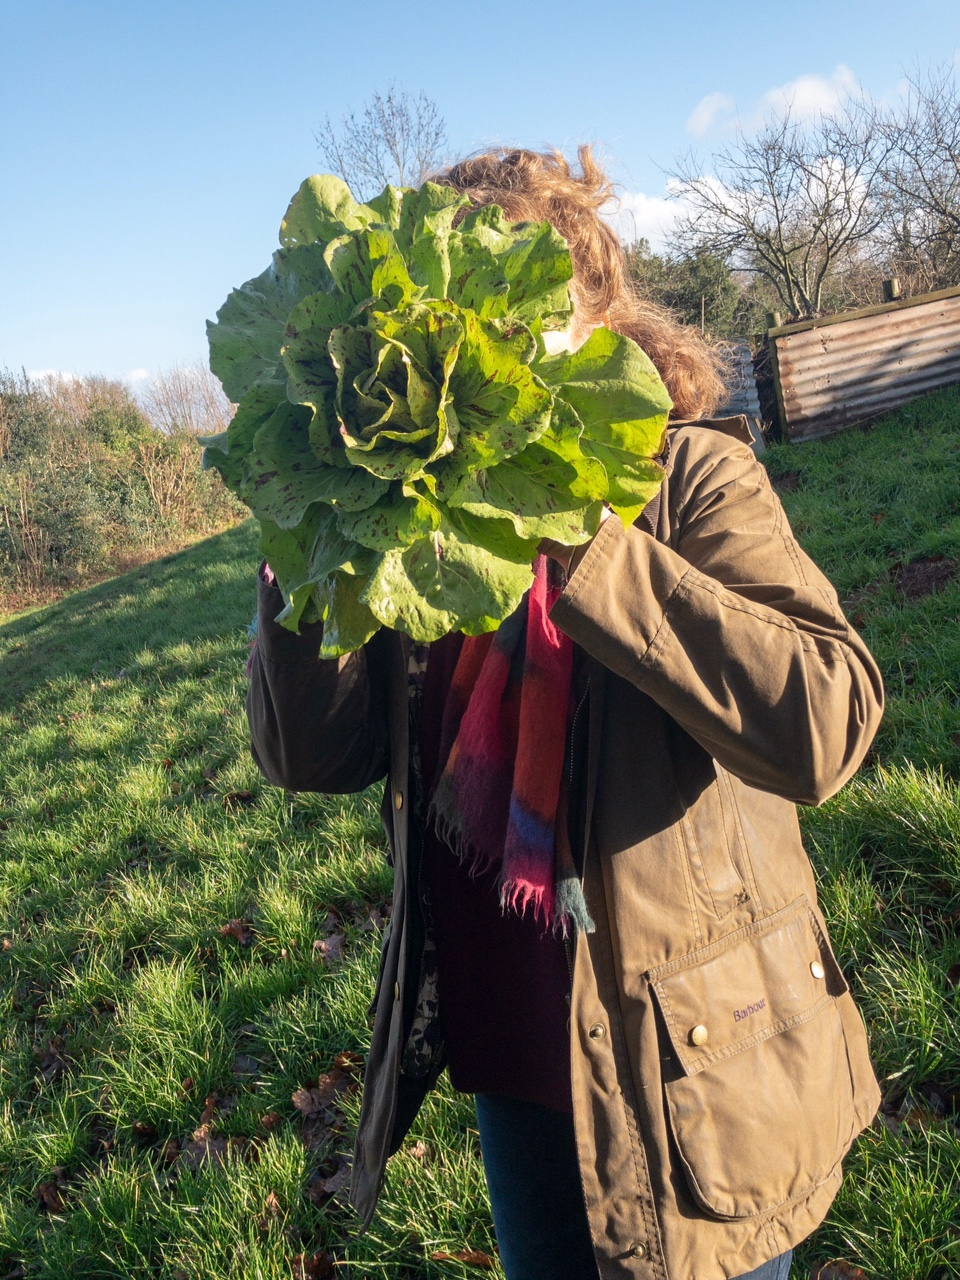 'Castelfranco' and me, down on the farm.